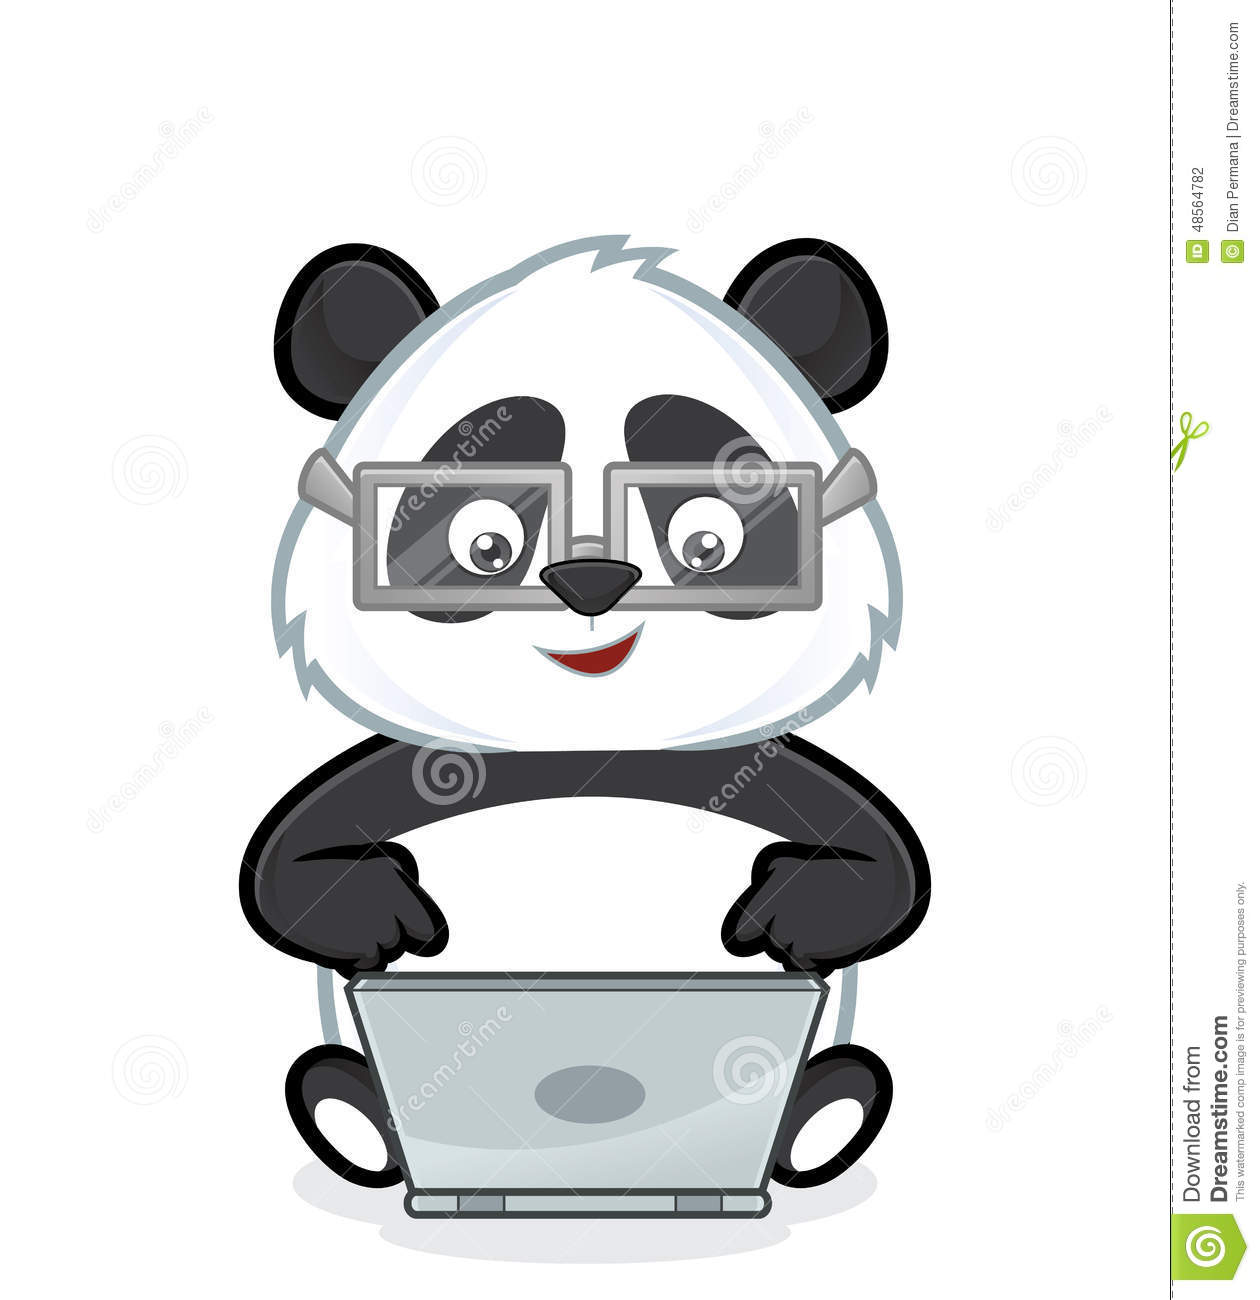 clipart panda website - photo #12